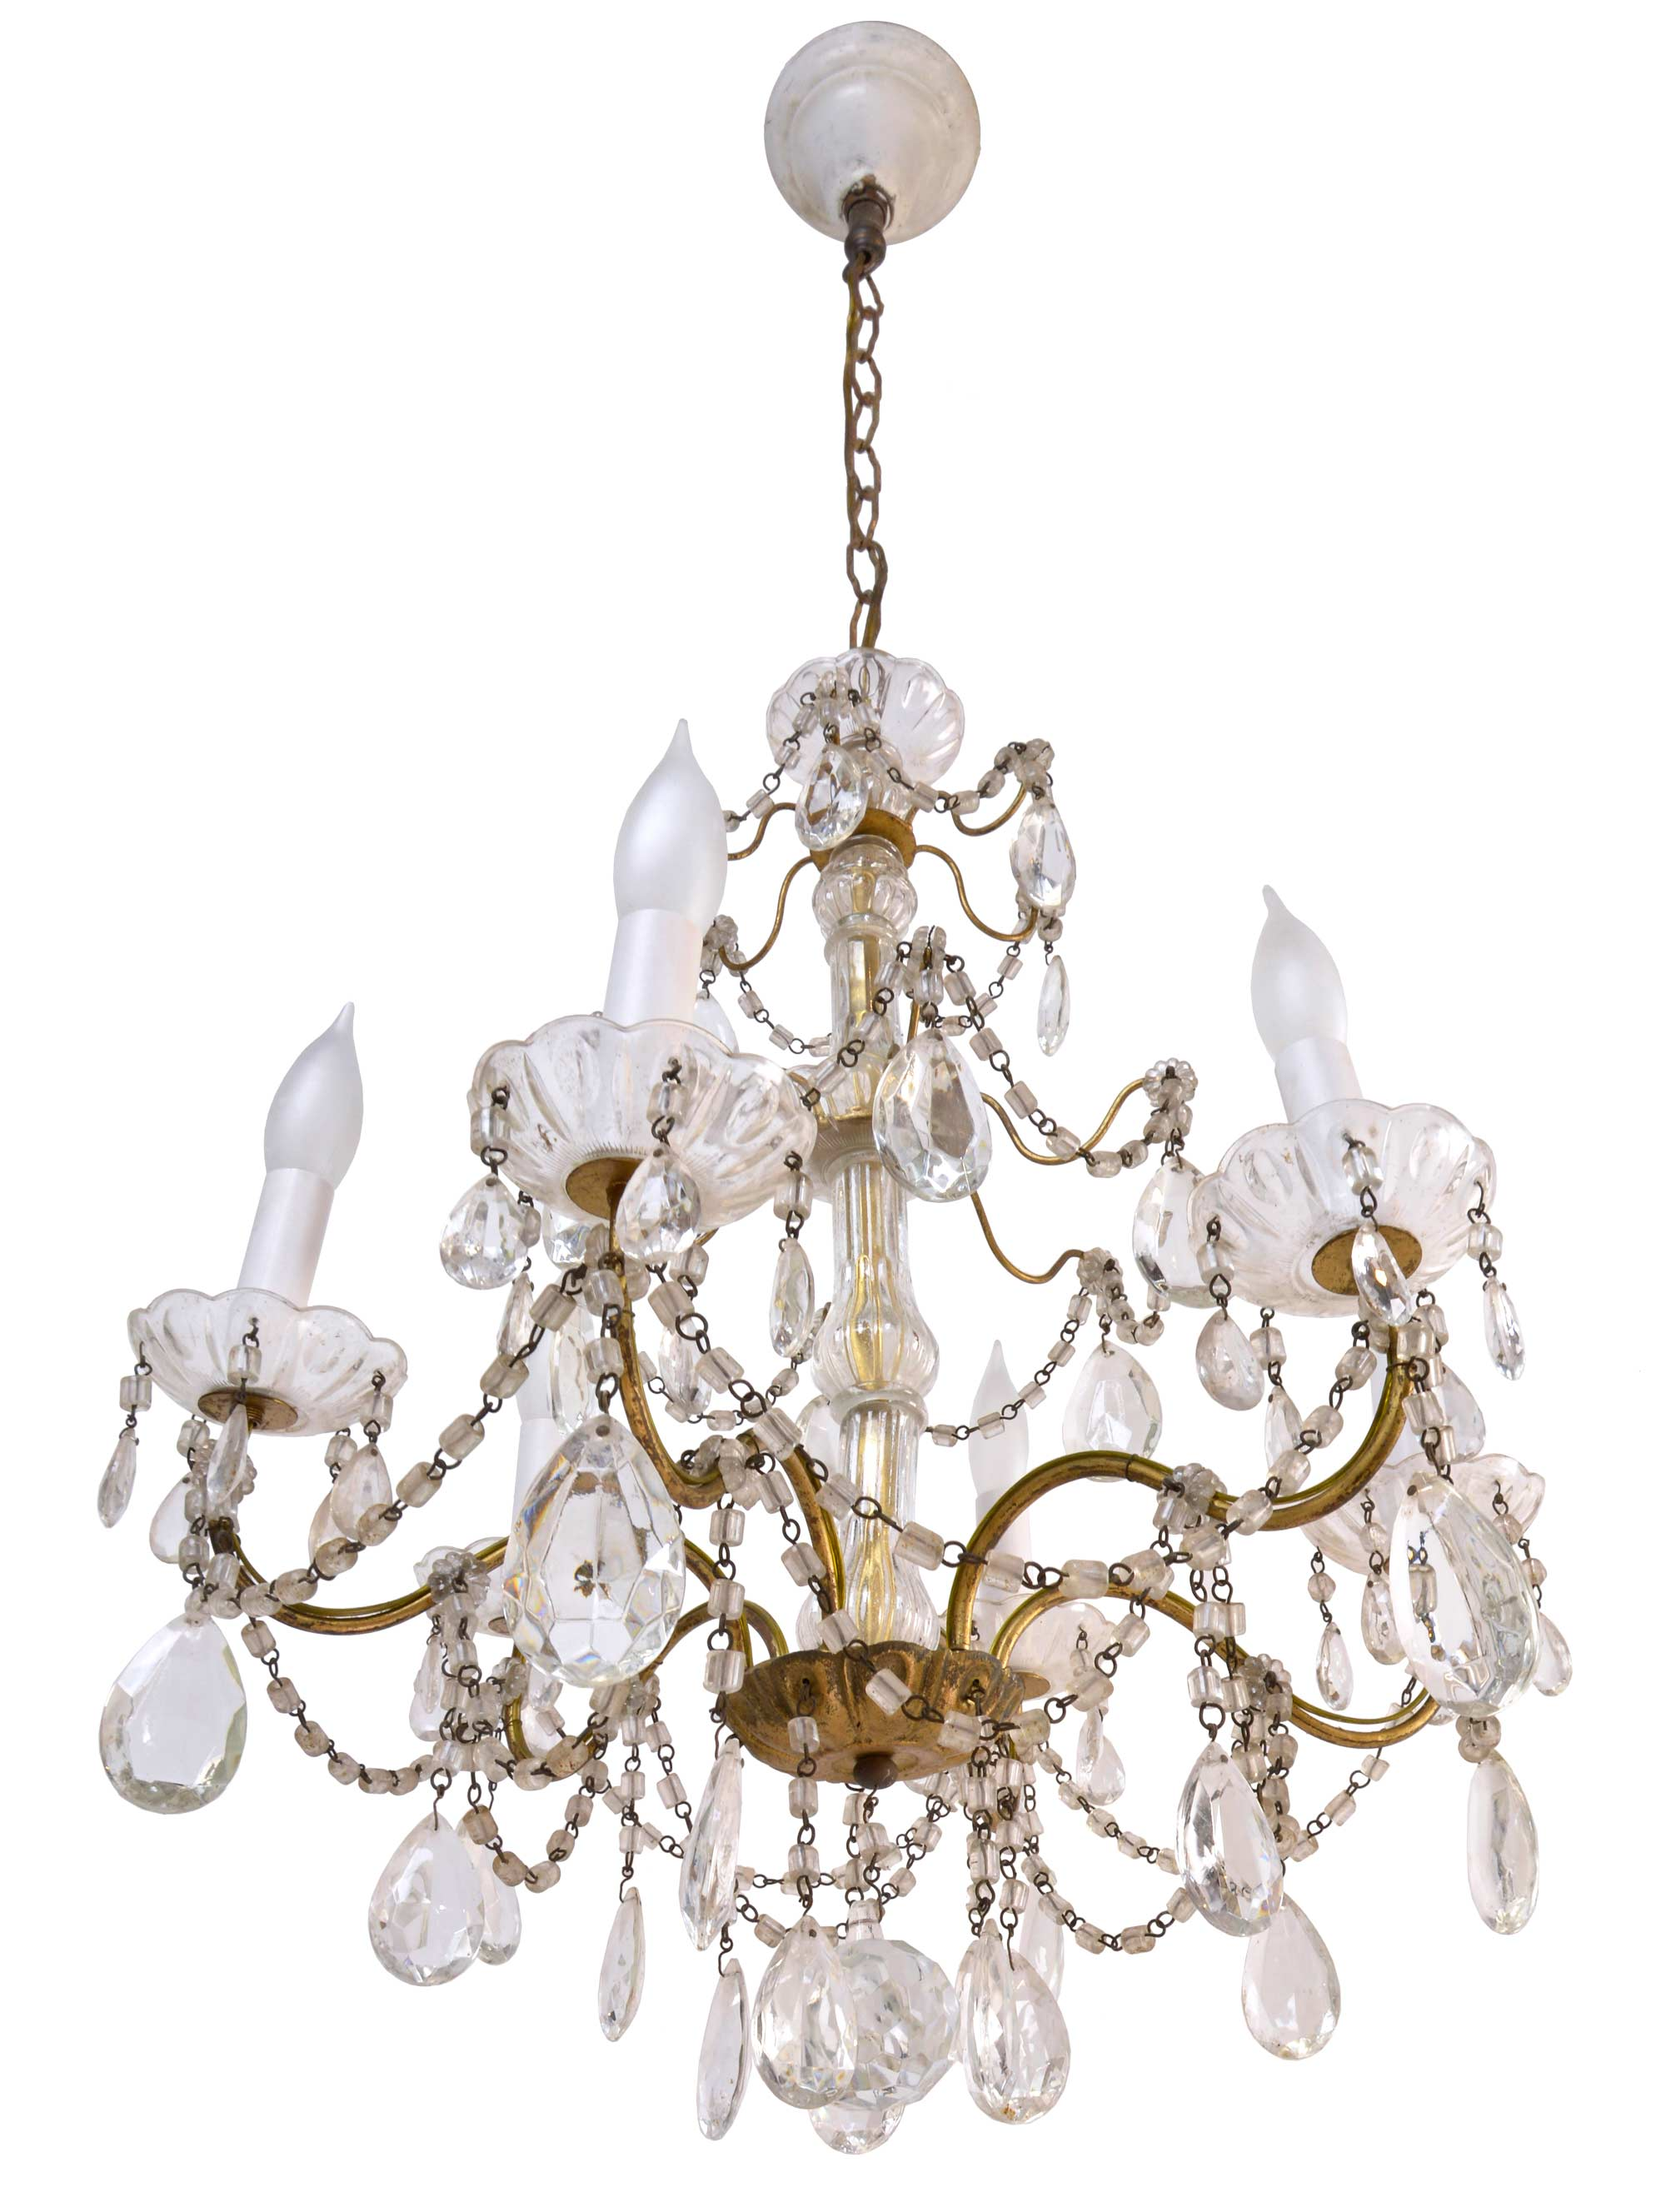 46610-six-arm-small-bead-chandelier-angle.jpg